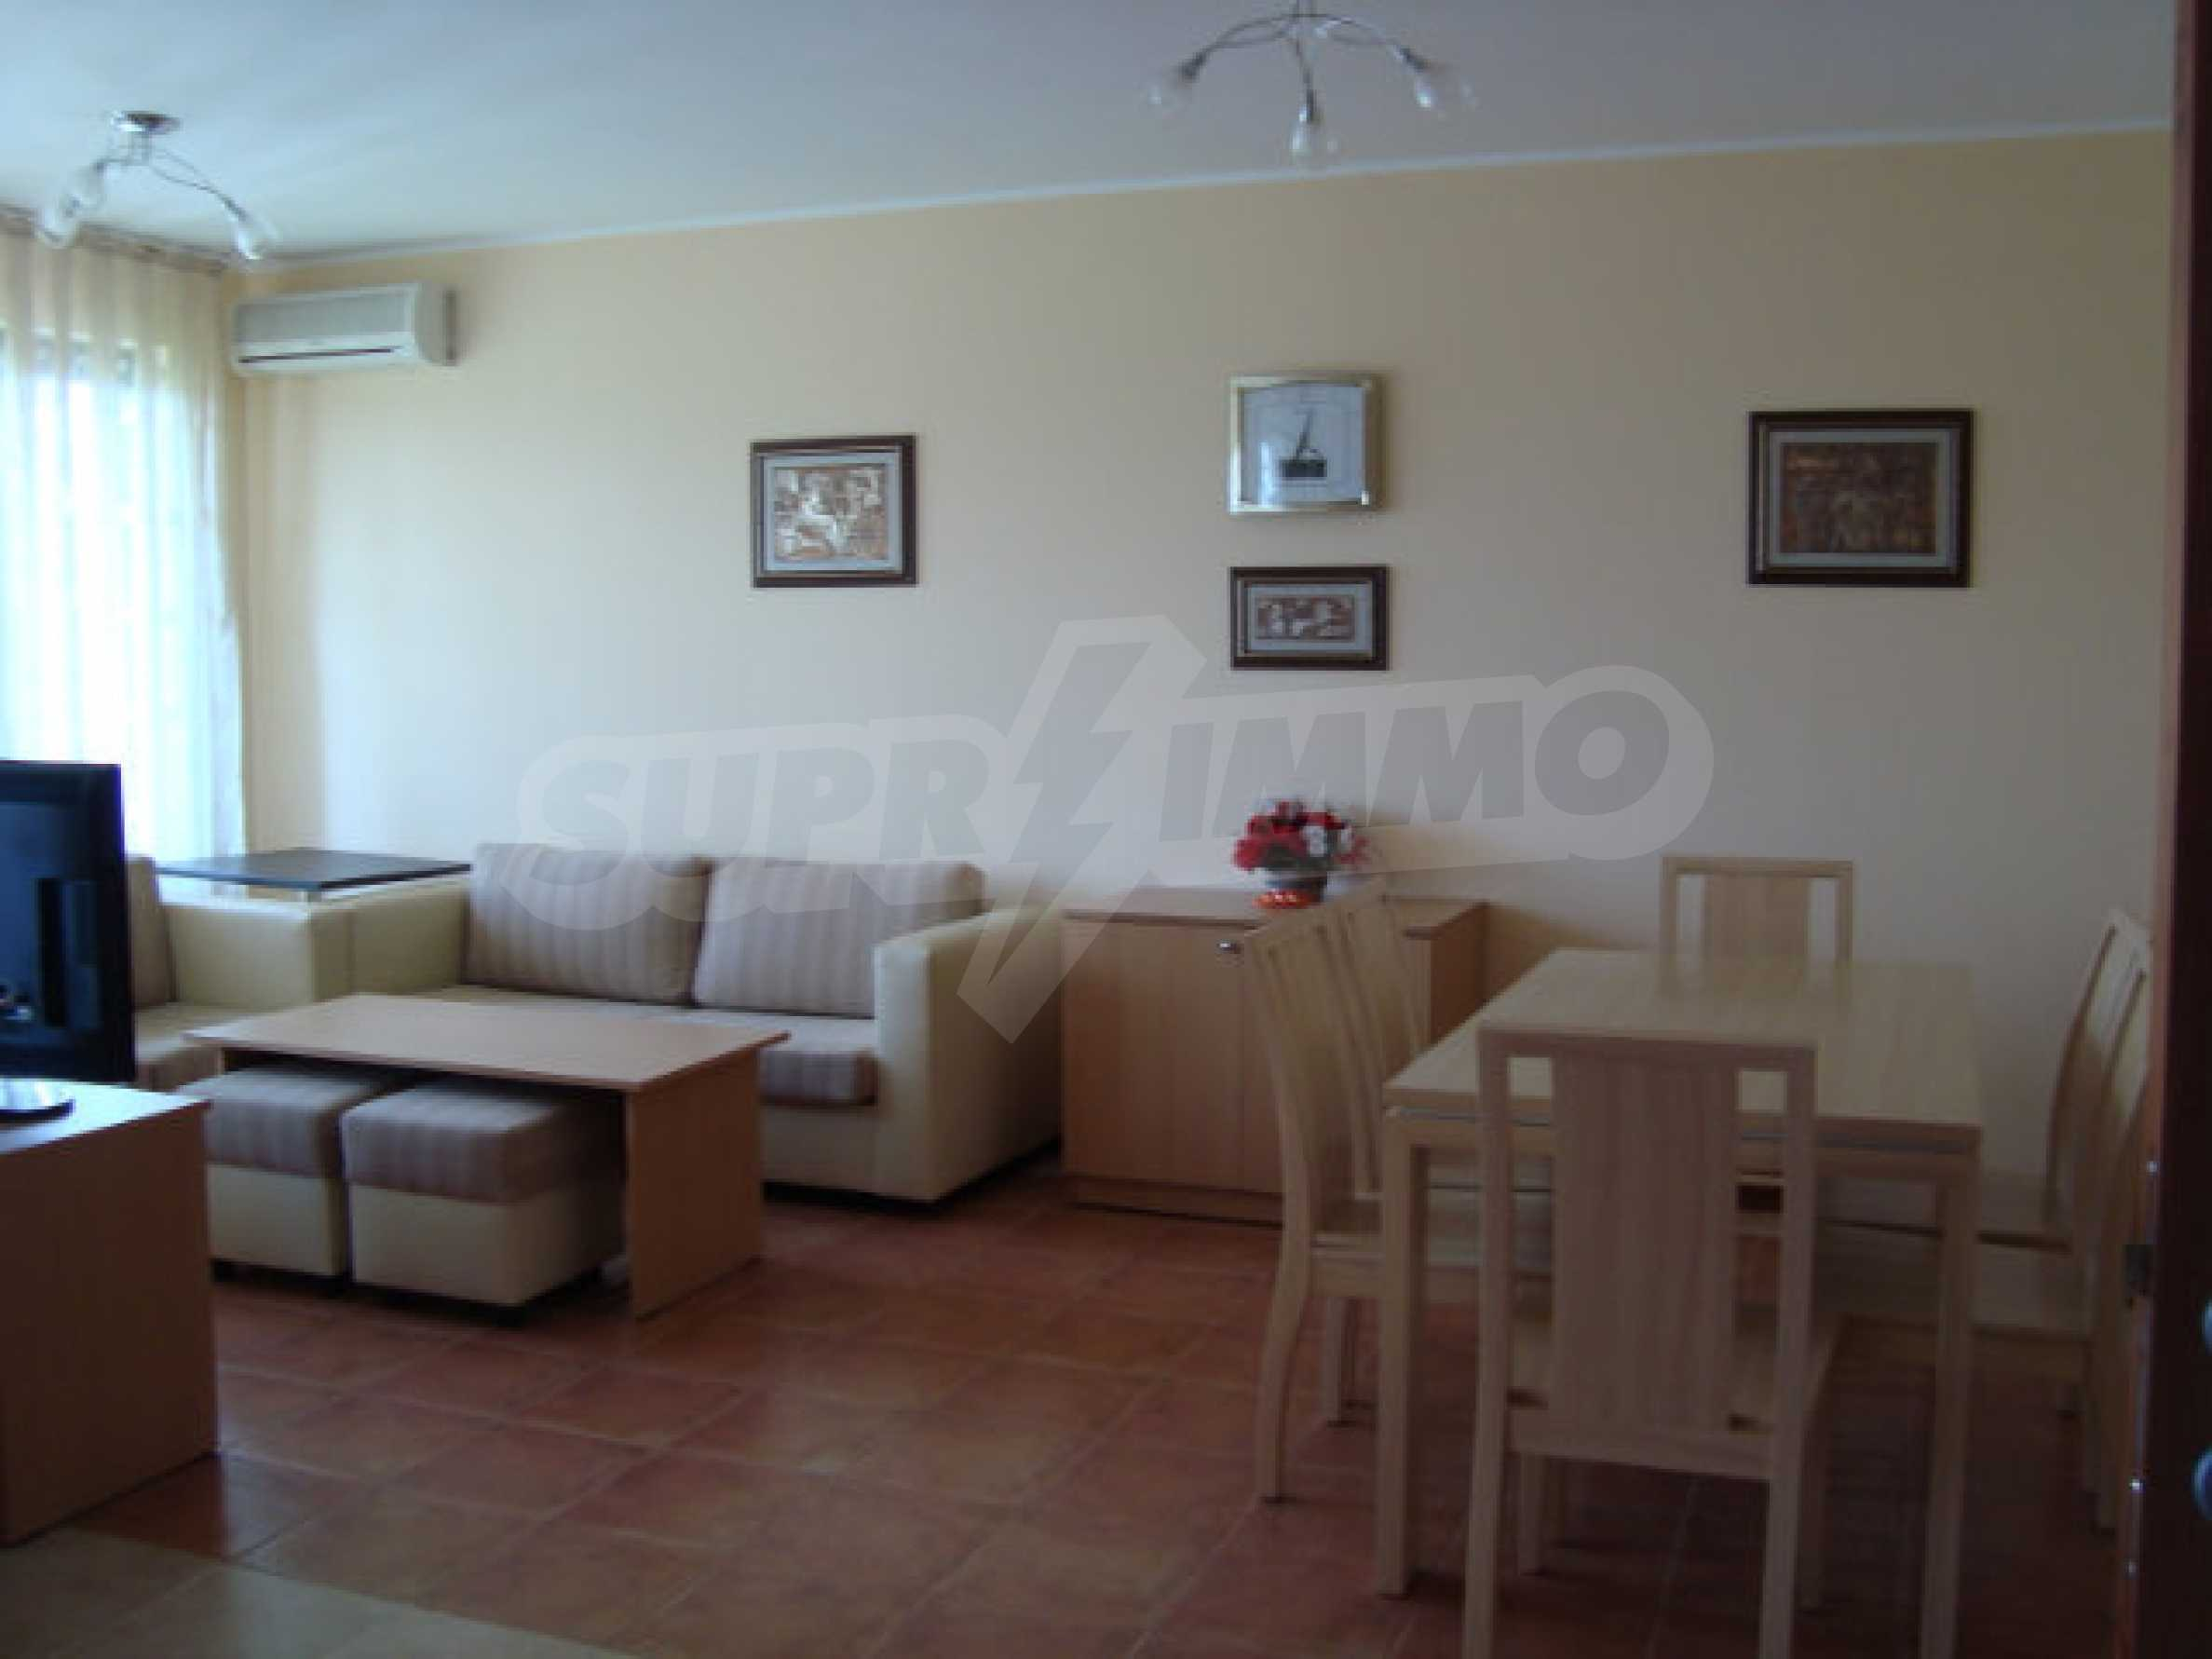 Two-bedroom apartment in Saint Nicholas complex in Chernomorets 11